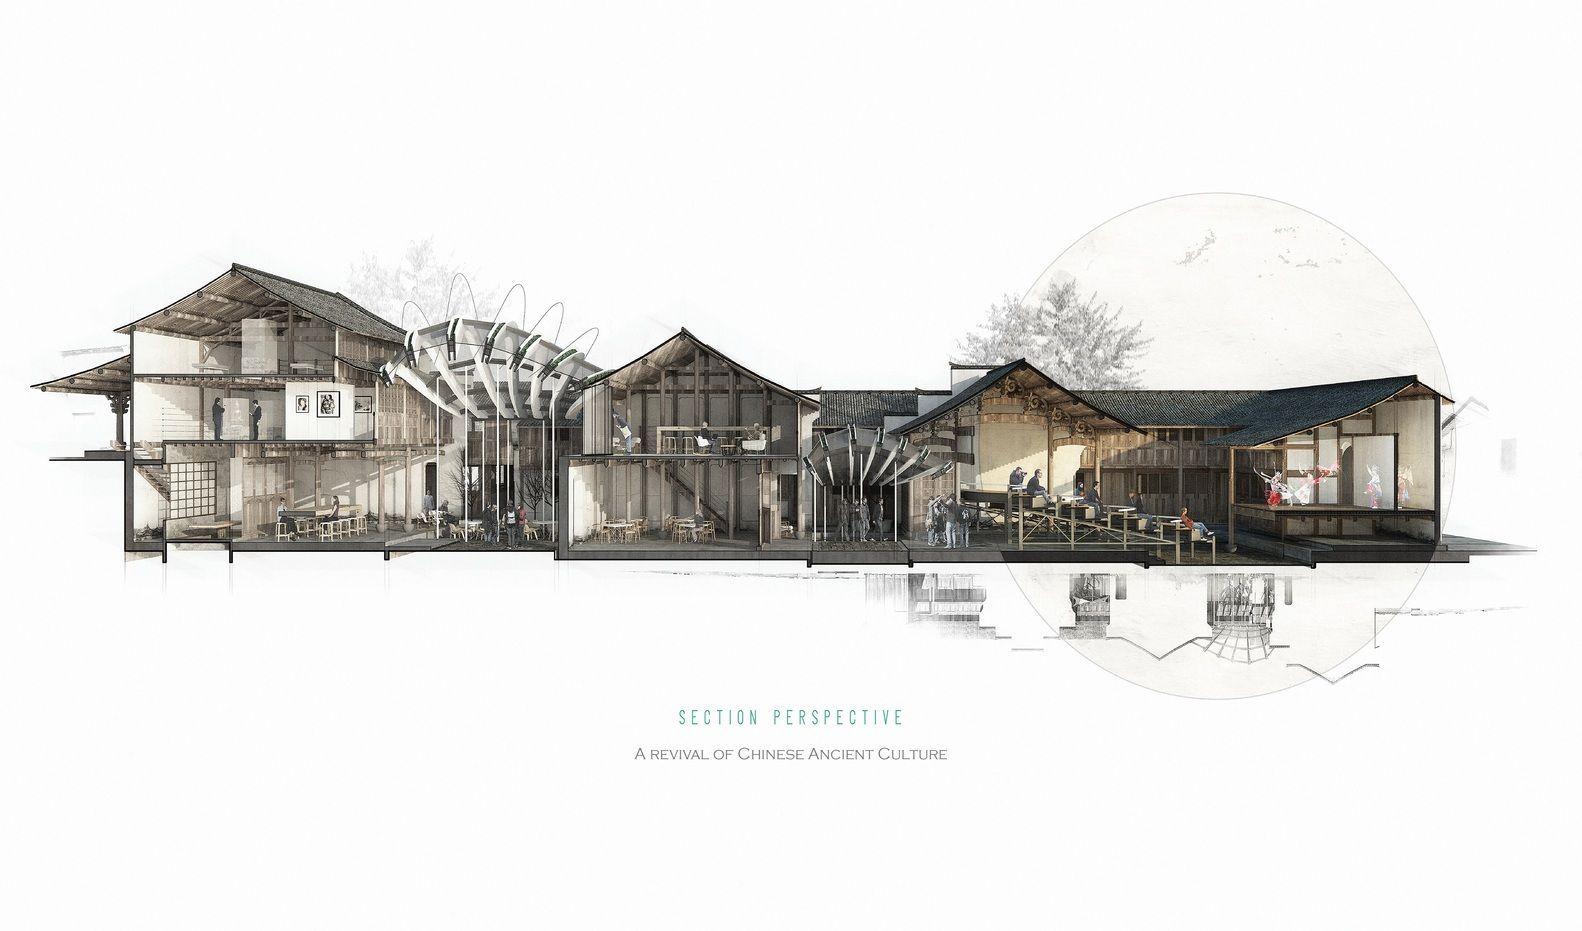 How Architectural Drawing In All Its Forms Can Help Us See The World Anew Renovation Of Architecture Drawing Architecture Rendering World Architecture Festival